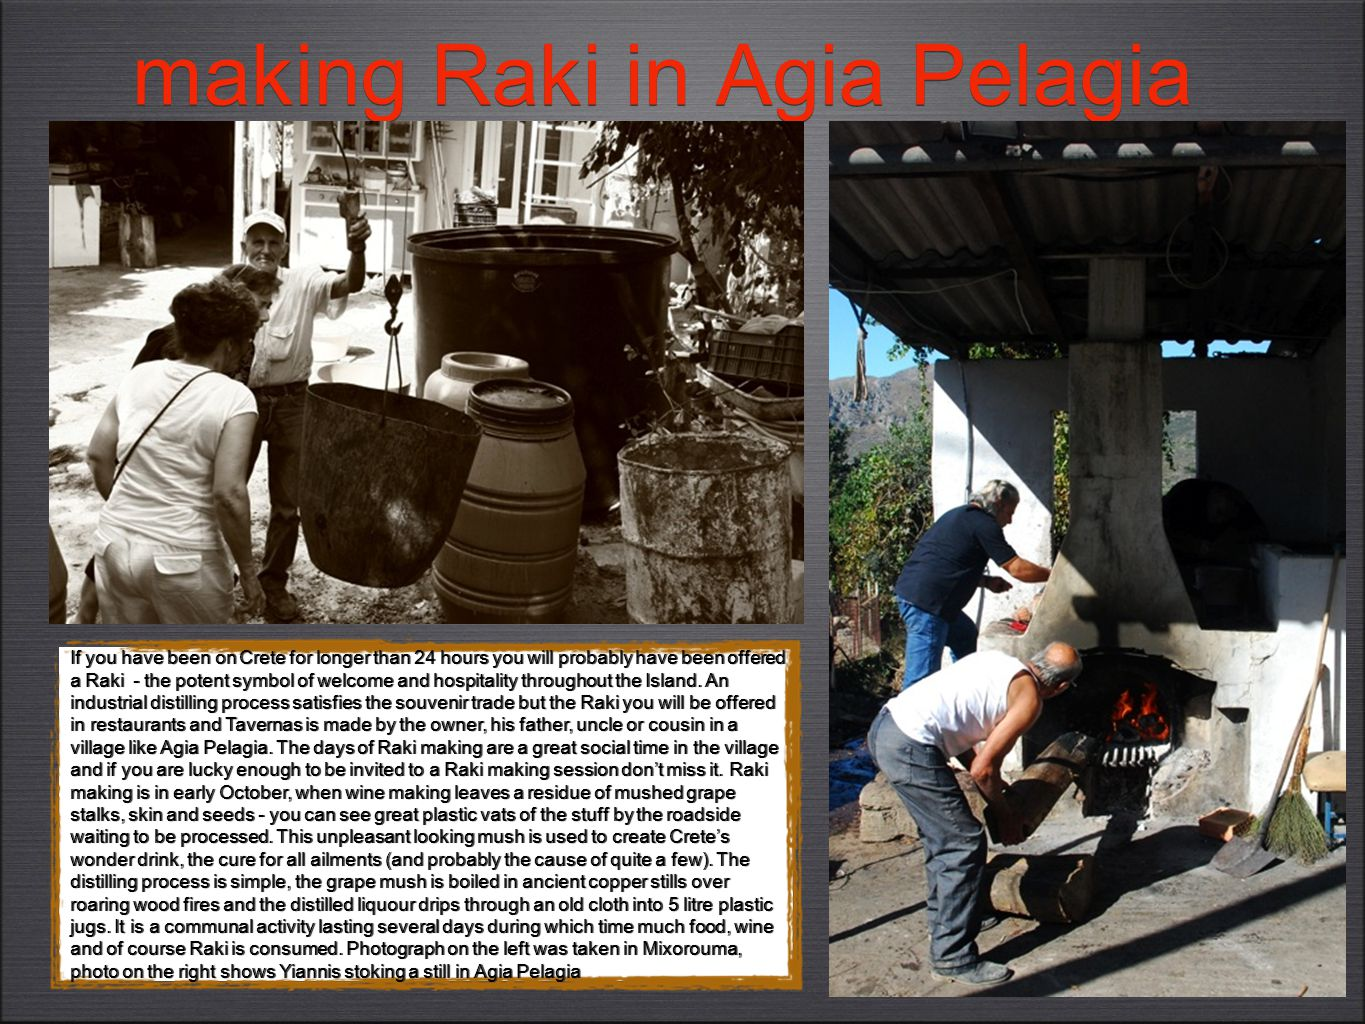 making Raki in Agia Pelagia If you have been on Crete for longer than 24 hours you will probably have been offered a Raki - the potent symbol of welcome and hospitality throughout the Island.